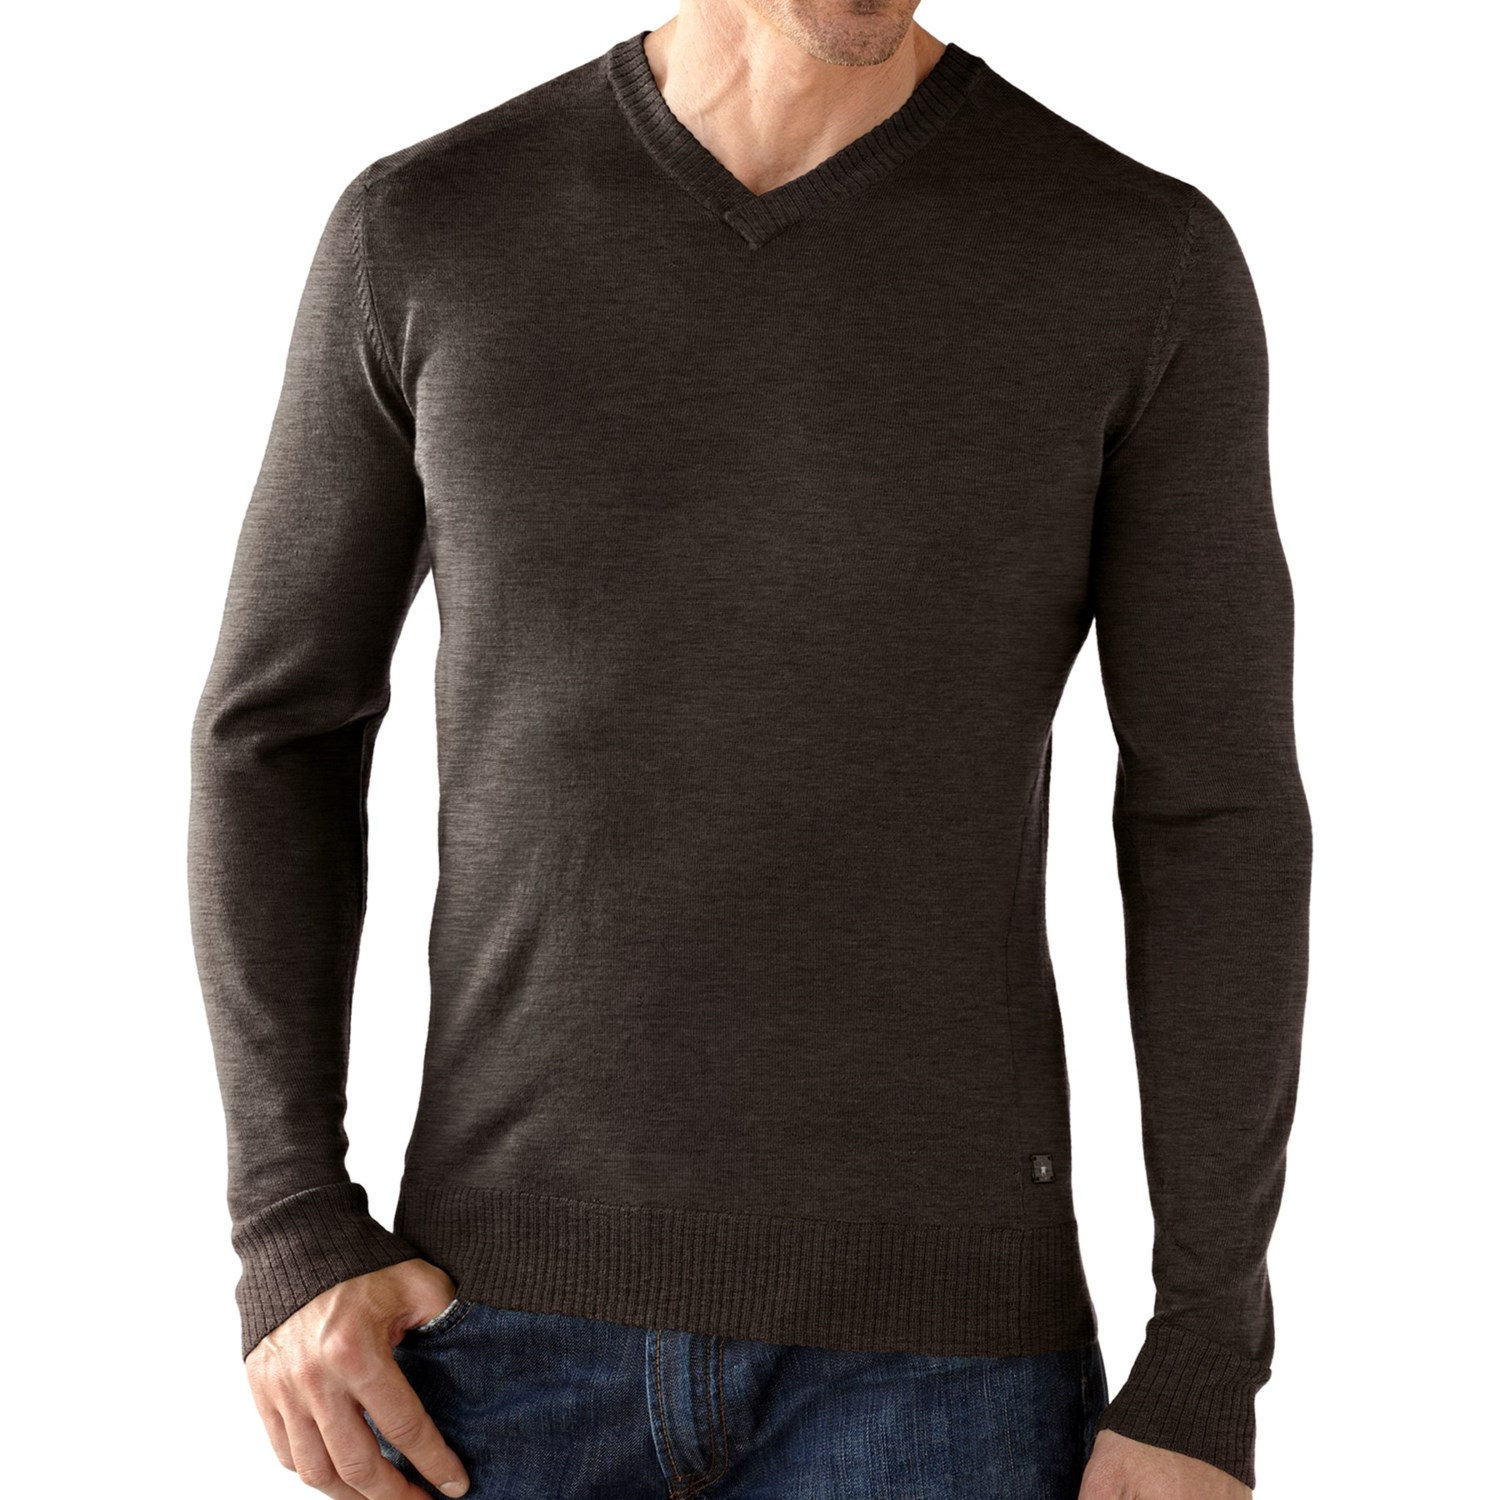 Steven Craig Apparel Men's Steven Craig Long Sleeve V Neck T-Shirt with Trim Grey with Purple XLarge. Sold by USA Dawgs LLC. $ $ Mad Engine Star Wars Imperial Symbol Thermal Long Sleeve T-Shirt. Sold by Seven Times Six. $ $